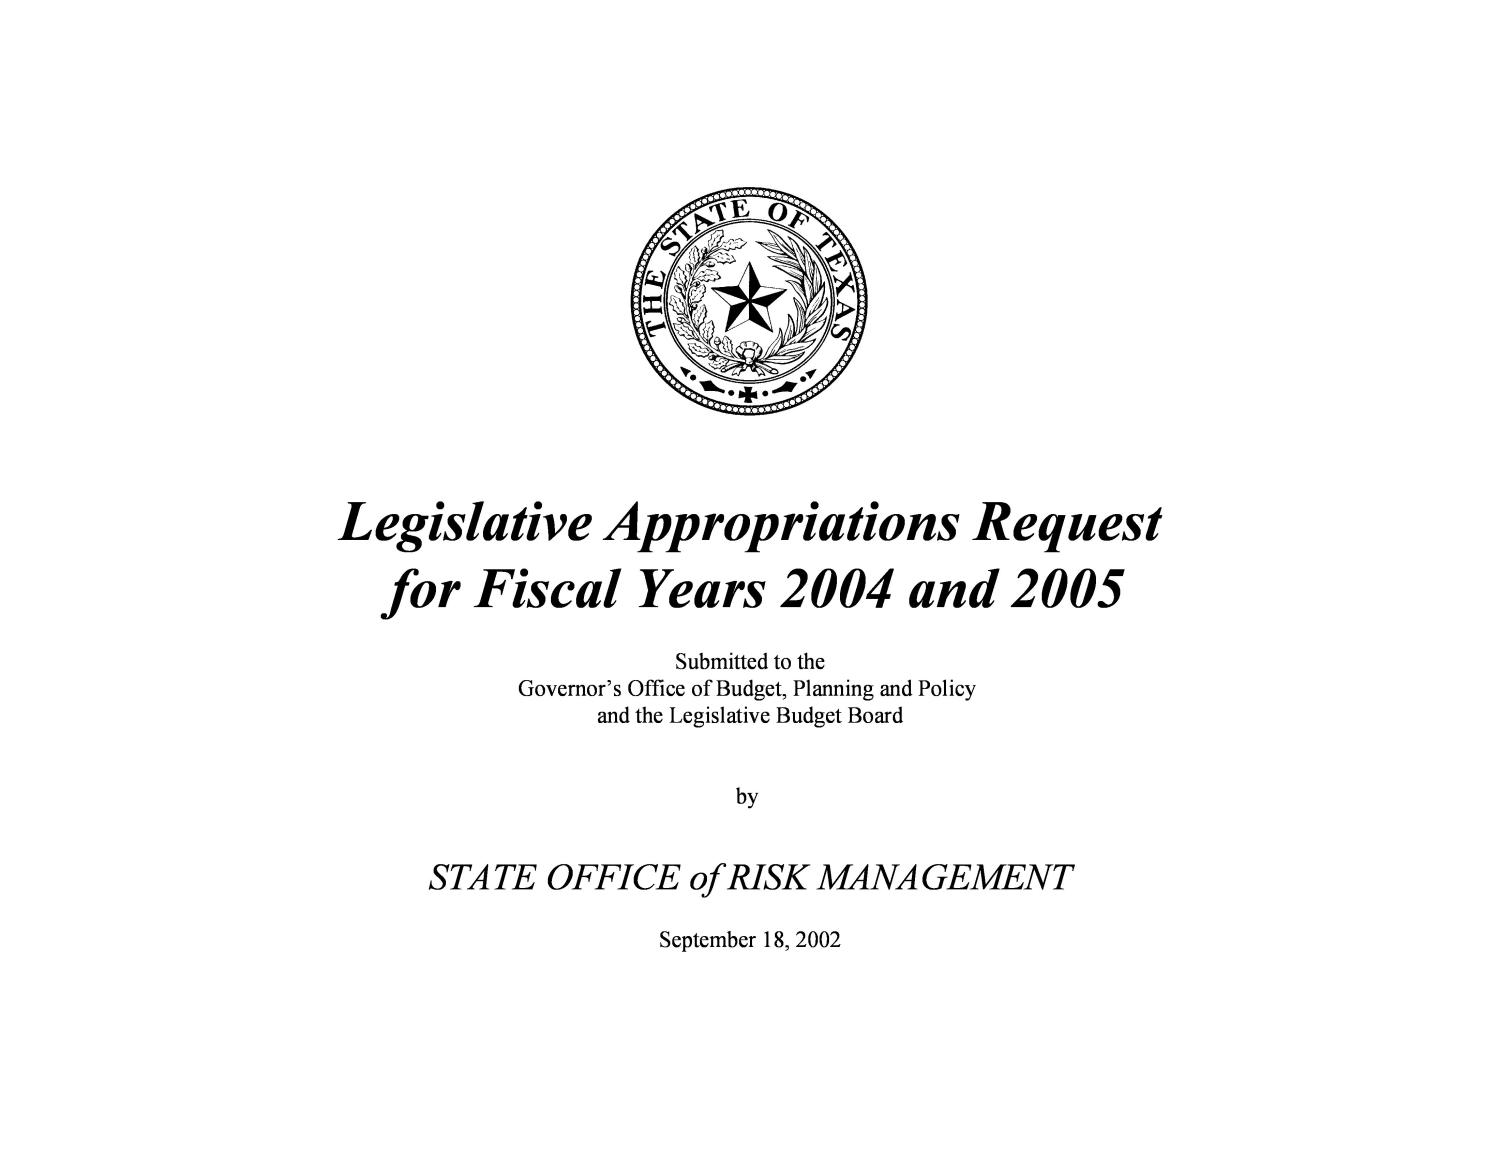 Texas State Office of Risk Management Requests for Legislative Appropriations: Fiscal Years 2004 and 2005                                                                                                      Front Cover